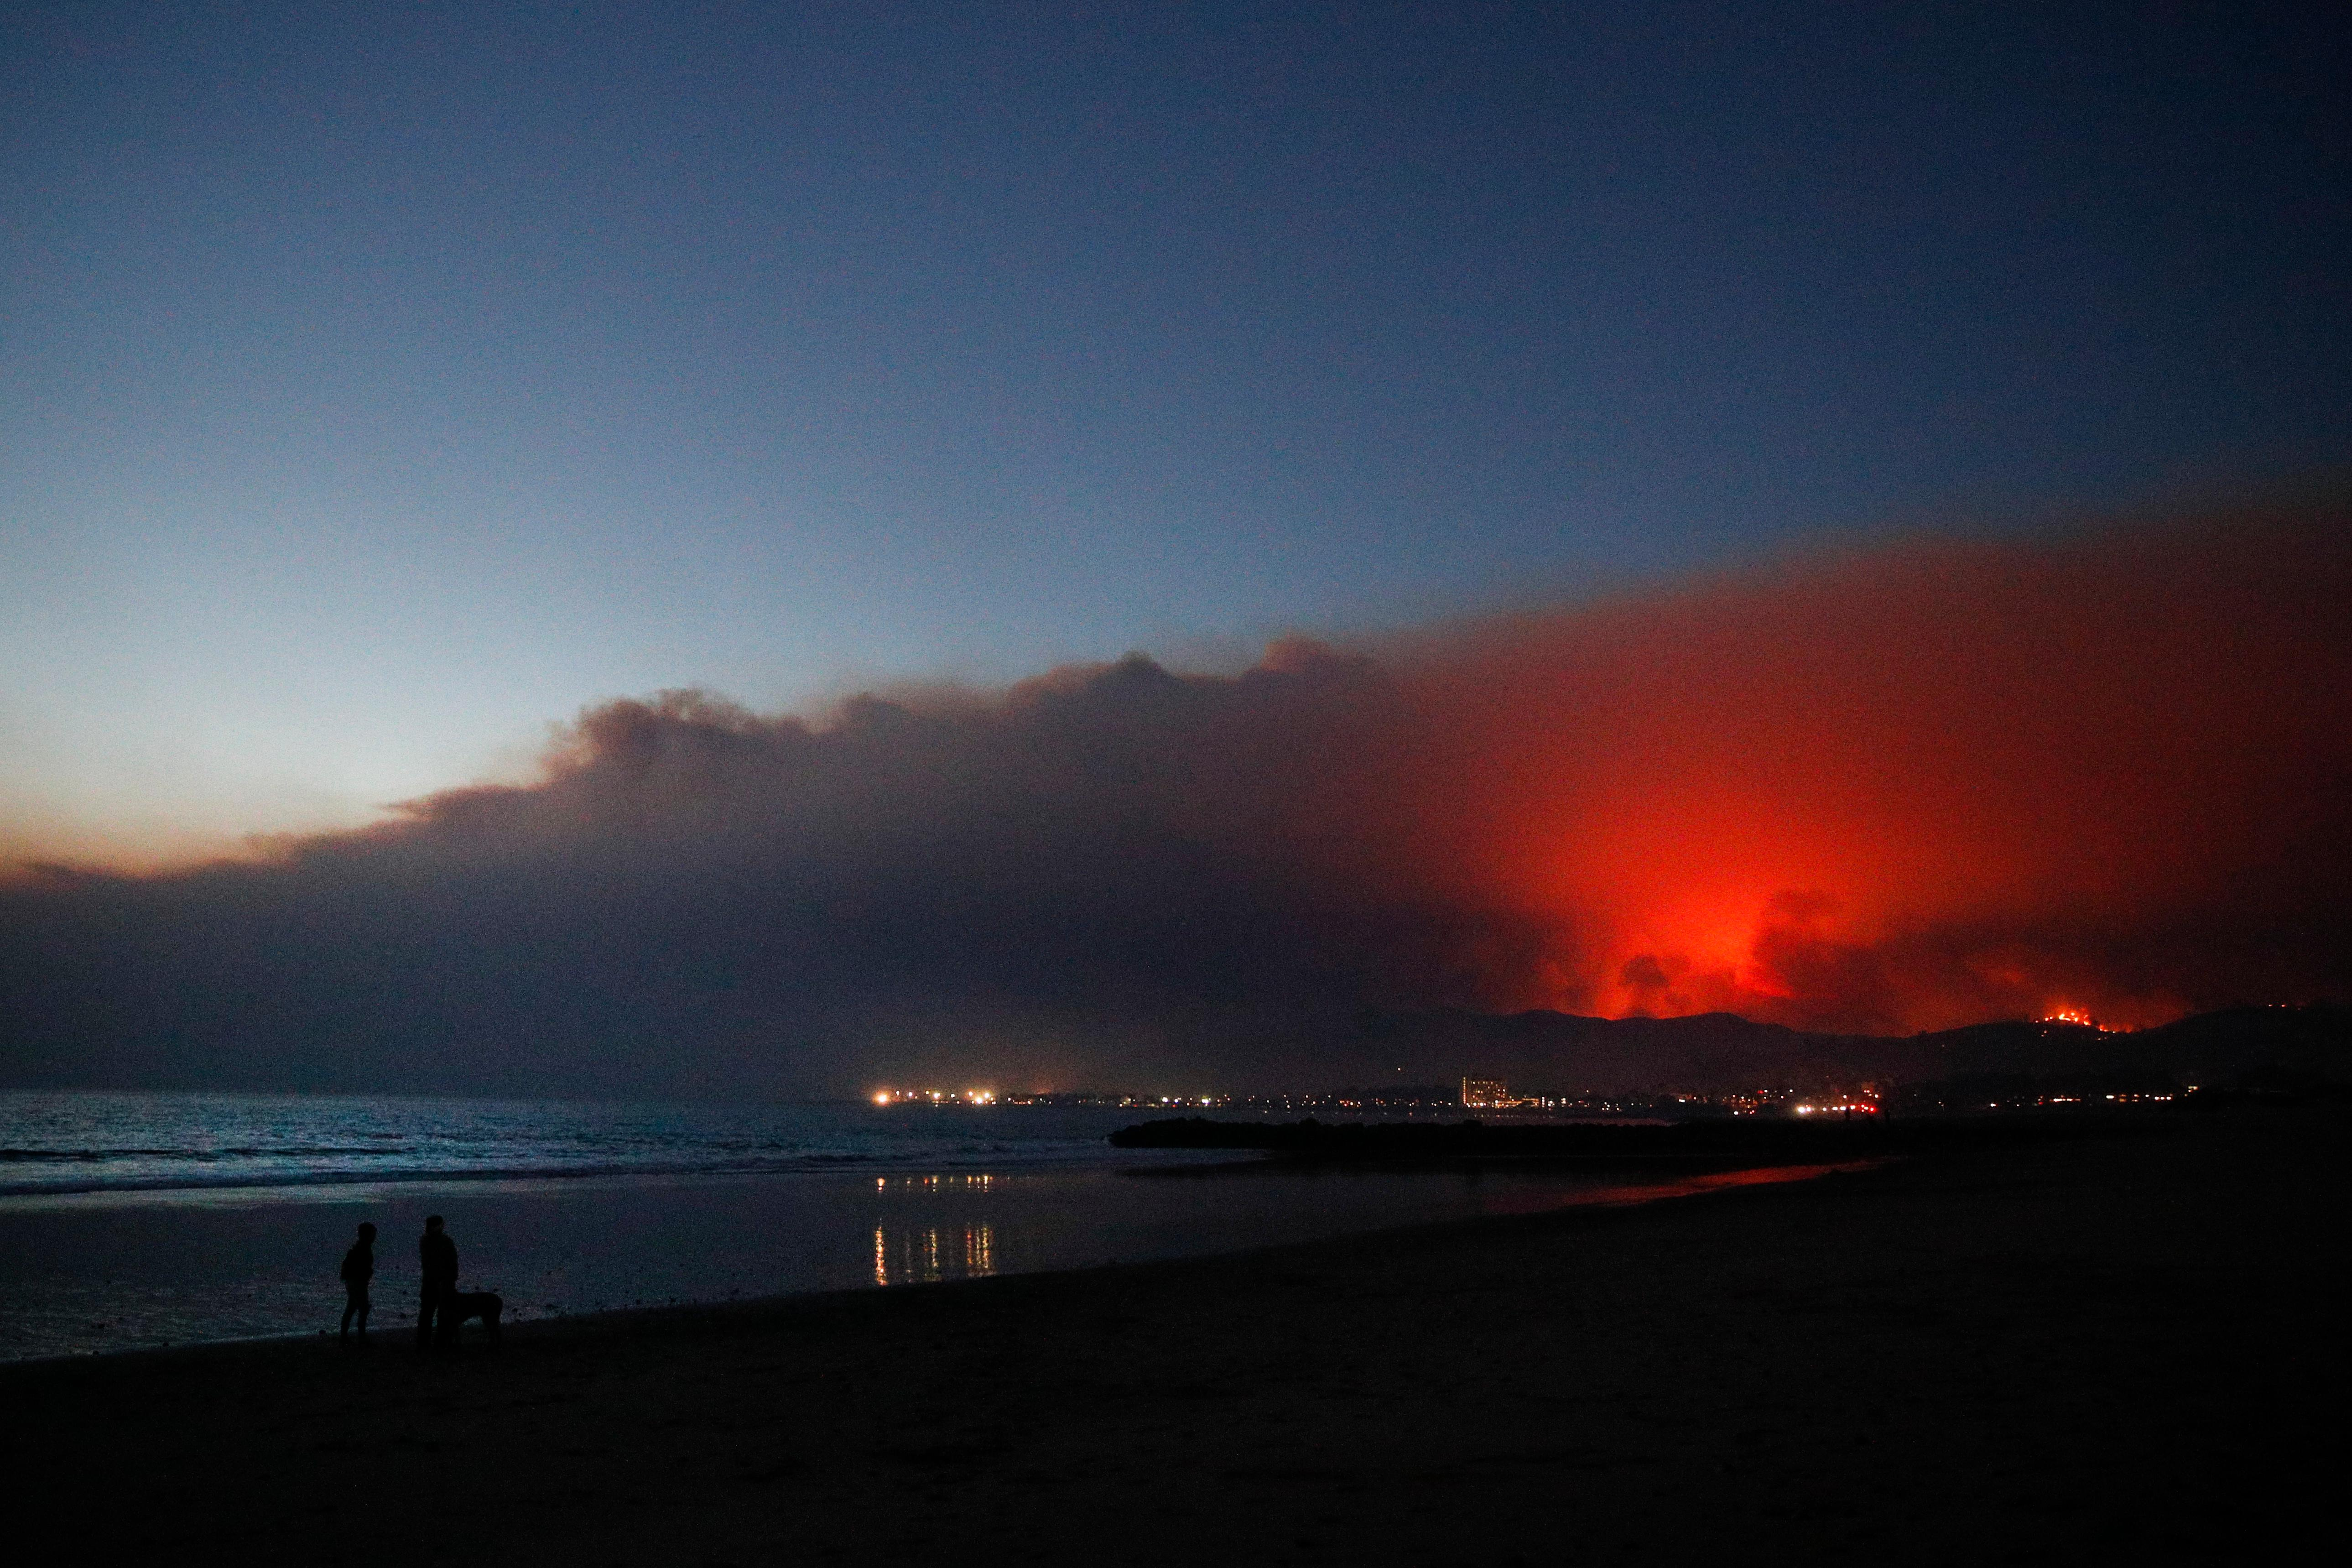 Two people walk along the beach with a dog as a wildfire burns in distance Tuesday, Dec. 5, 2017, in Ventura, Calif. Raked by ferocious Santa Ana winds, explosive wildfires northwest of Los Angeles and in the city's foothills burned a psychiatric hospital and scores of homes and other structures Tuesday and forced the evacuation of tens of thousands of people. (AP Photo/Jae C. Hong)